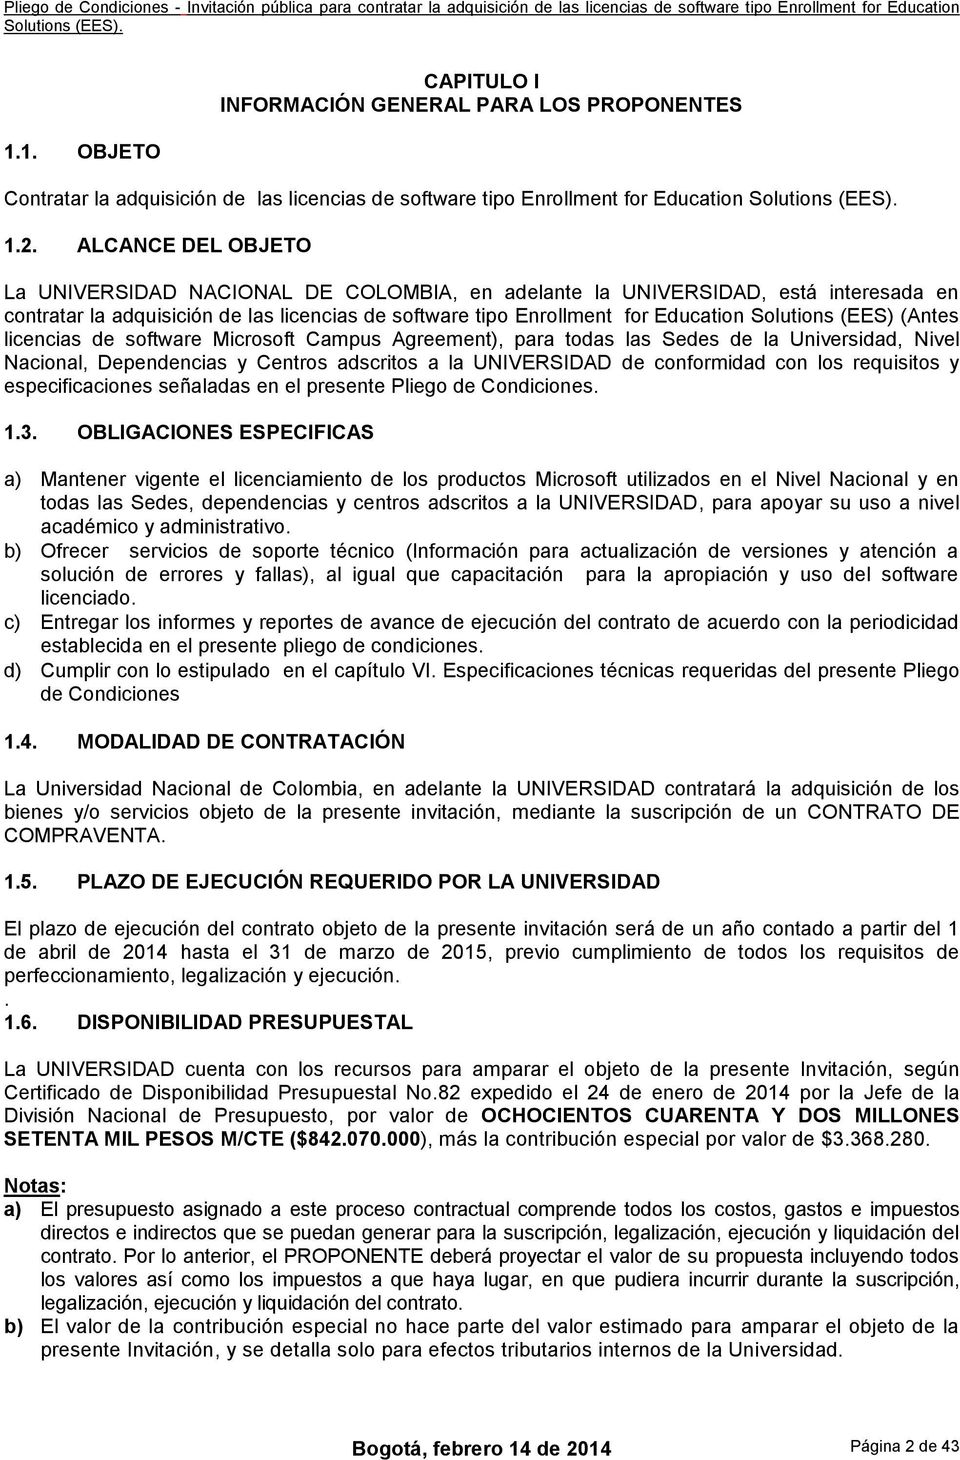 (EES) (Antes licencias de software Microsoft Campus Agreement), para todas las Sedes de la Universidad, Nivel Nacional, Dependencias y Centros adscritos a la UNIVERSIDAD de conformidad con los